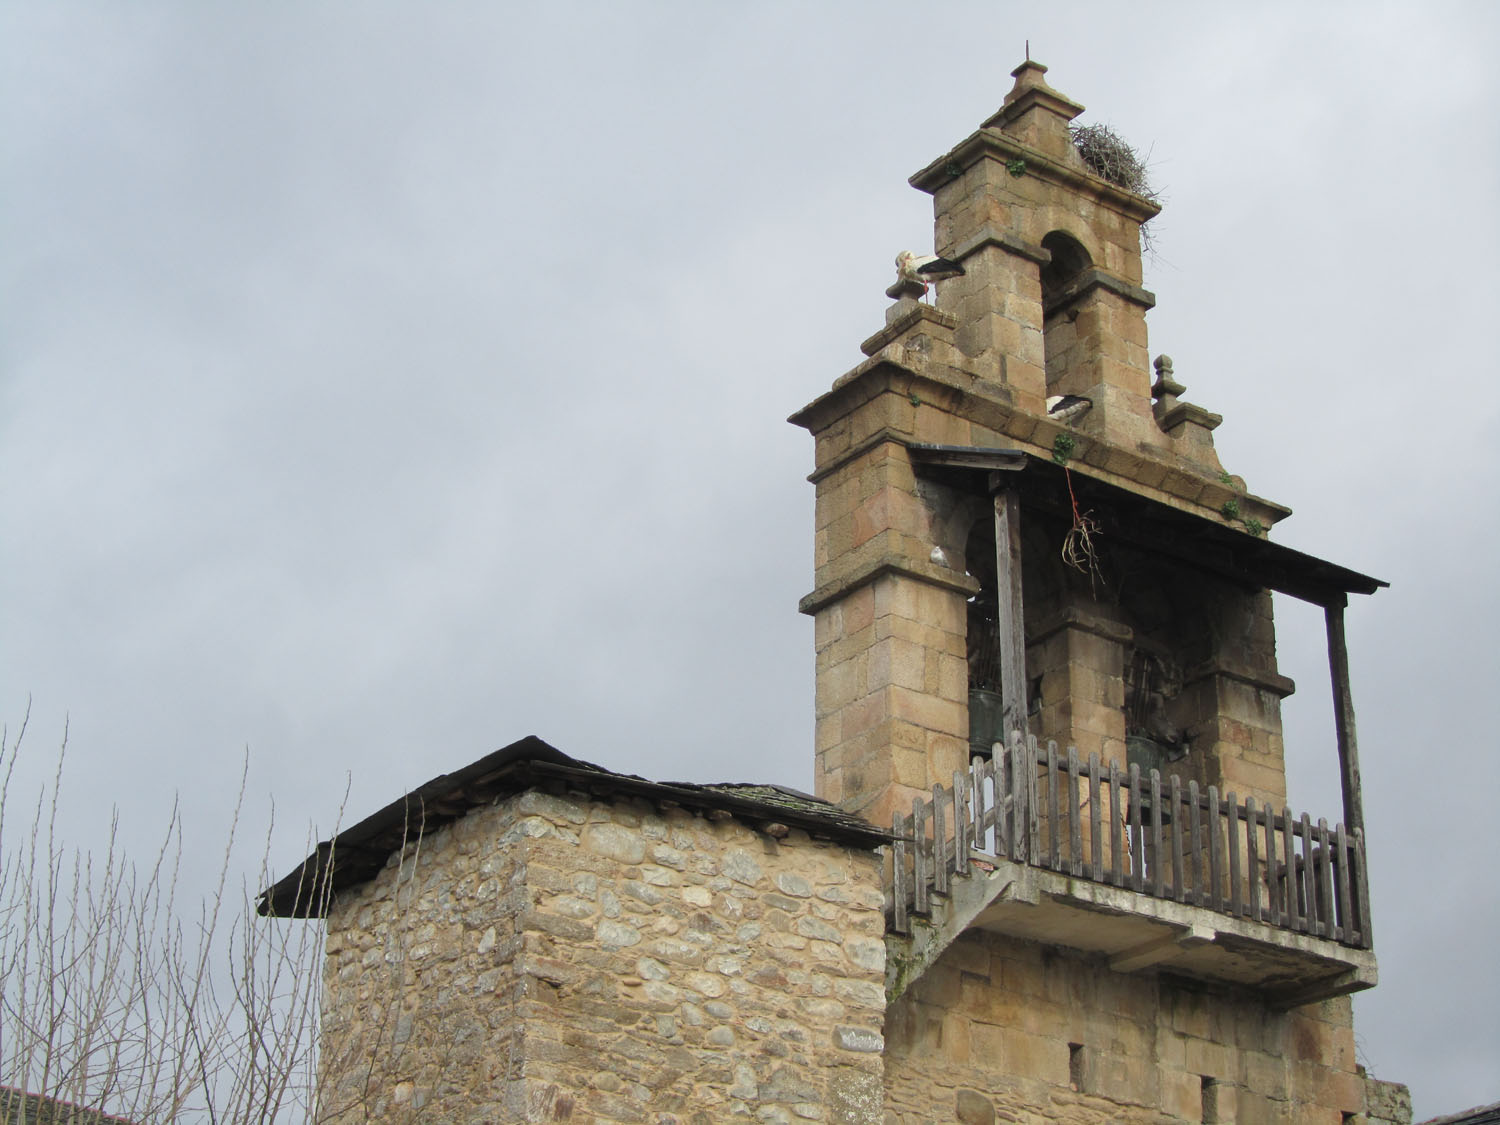 Camino-De-Santiago-Sights-And-Scenery-Church-Steeple-Storks